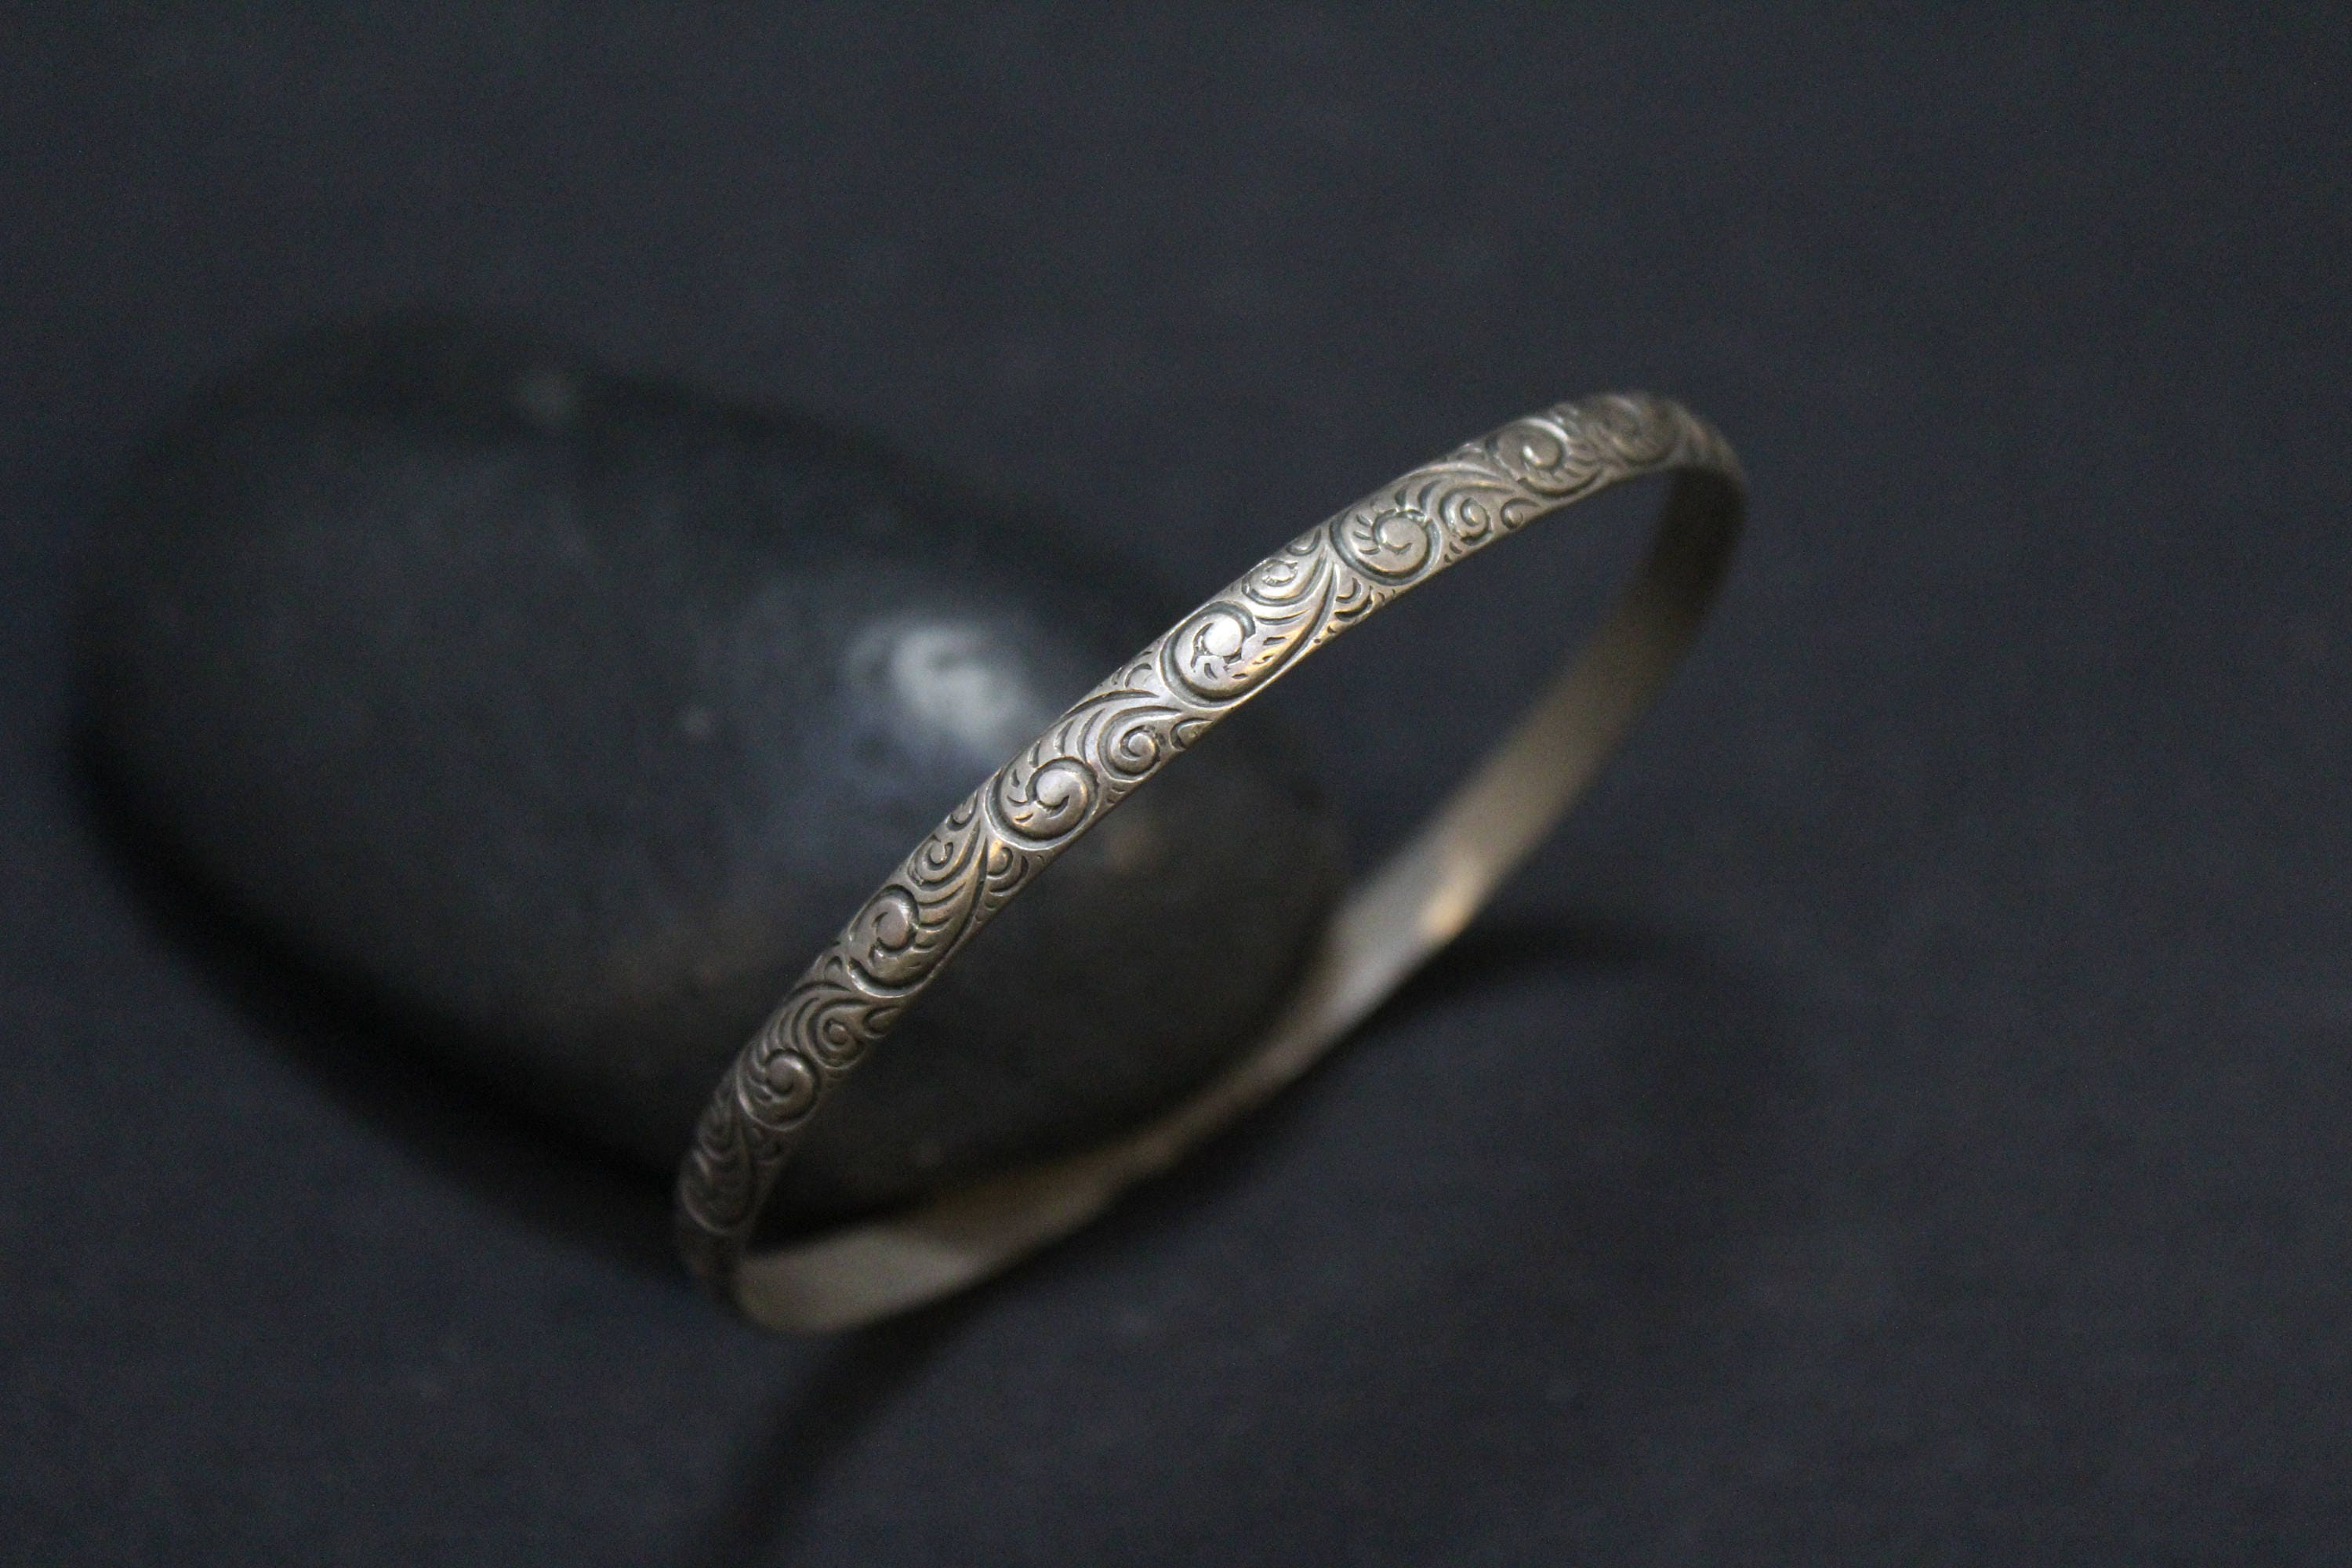 wide unisex swirl bands pattern and narrow set band silver wedding rustic pin sterling rings in smoke arabesque patterned